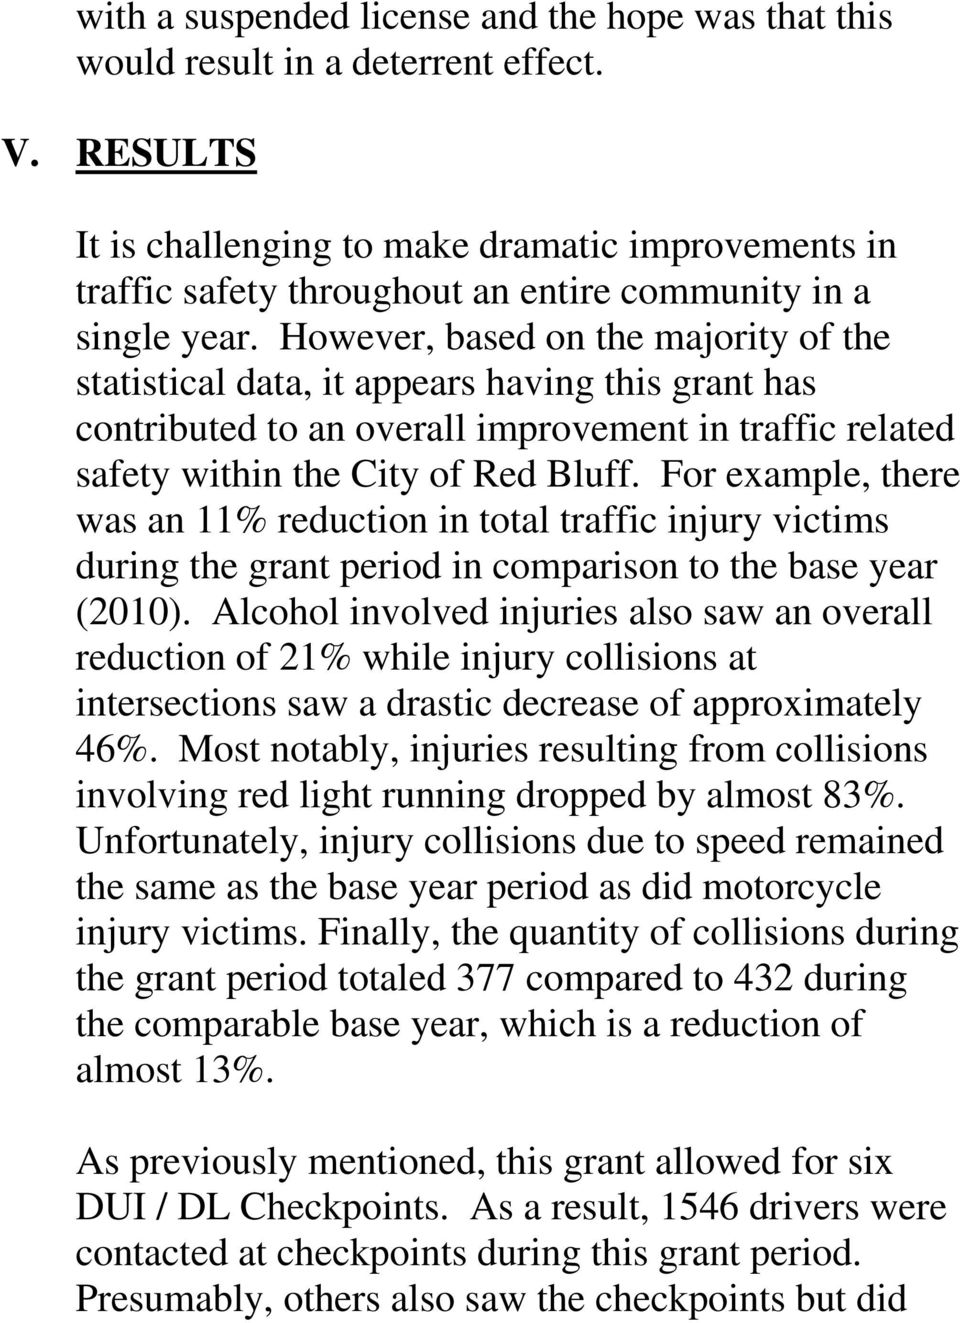 However, based on the majority of the statistical data, it appears having this grant has contributed to an overall improvement in traffic related safety within the City of Red Bluff.